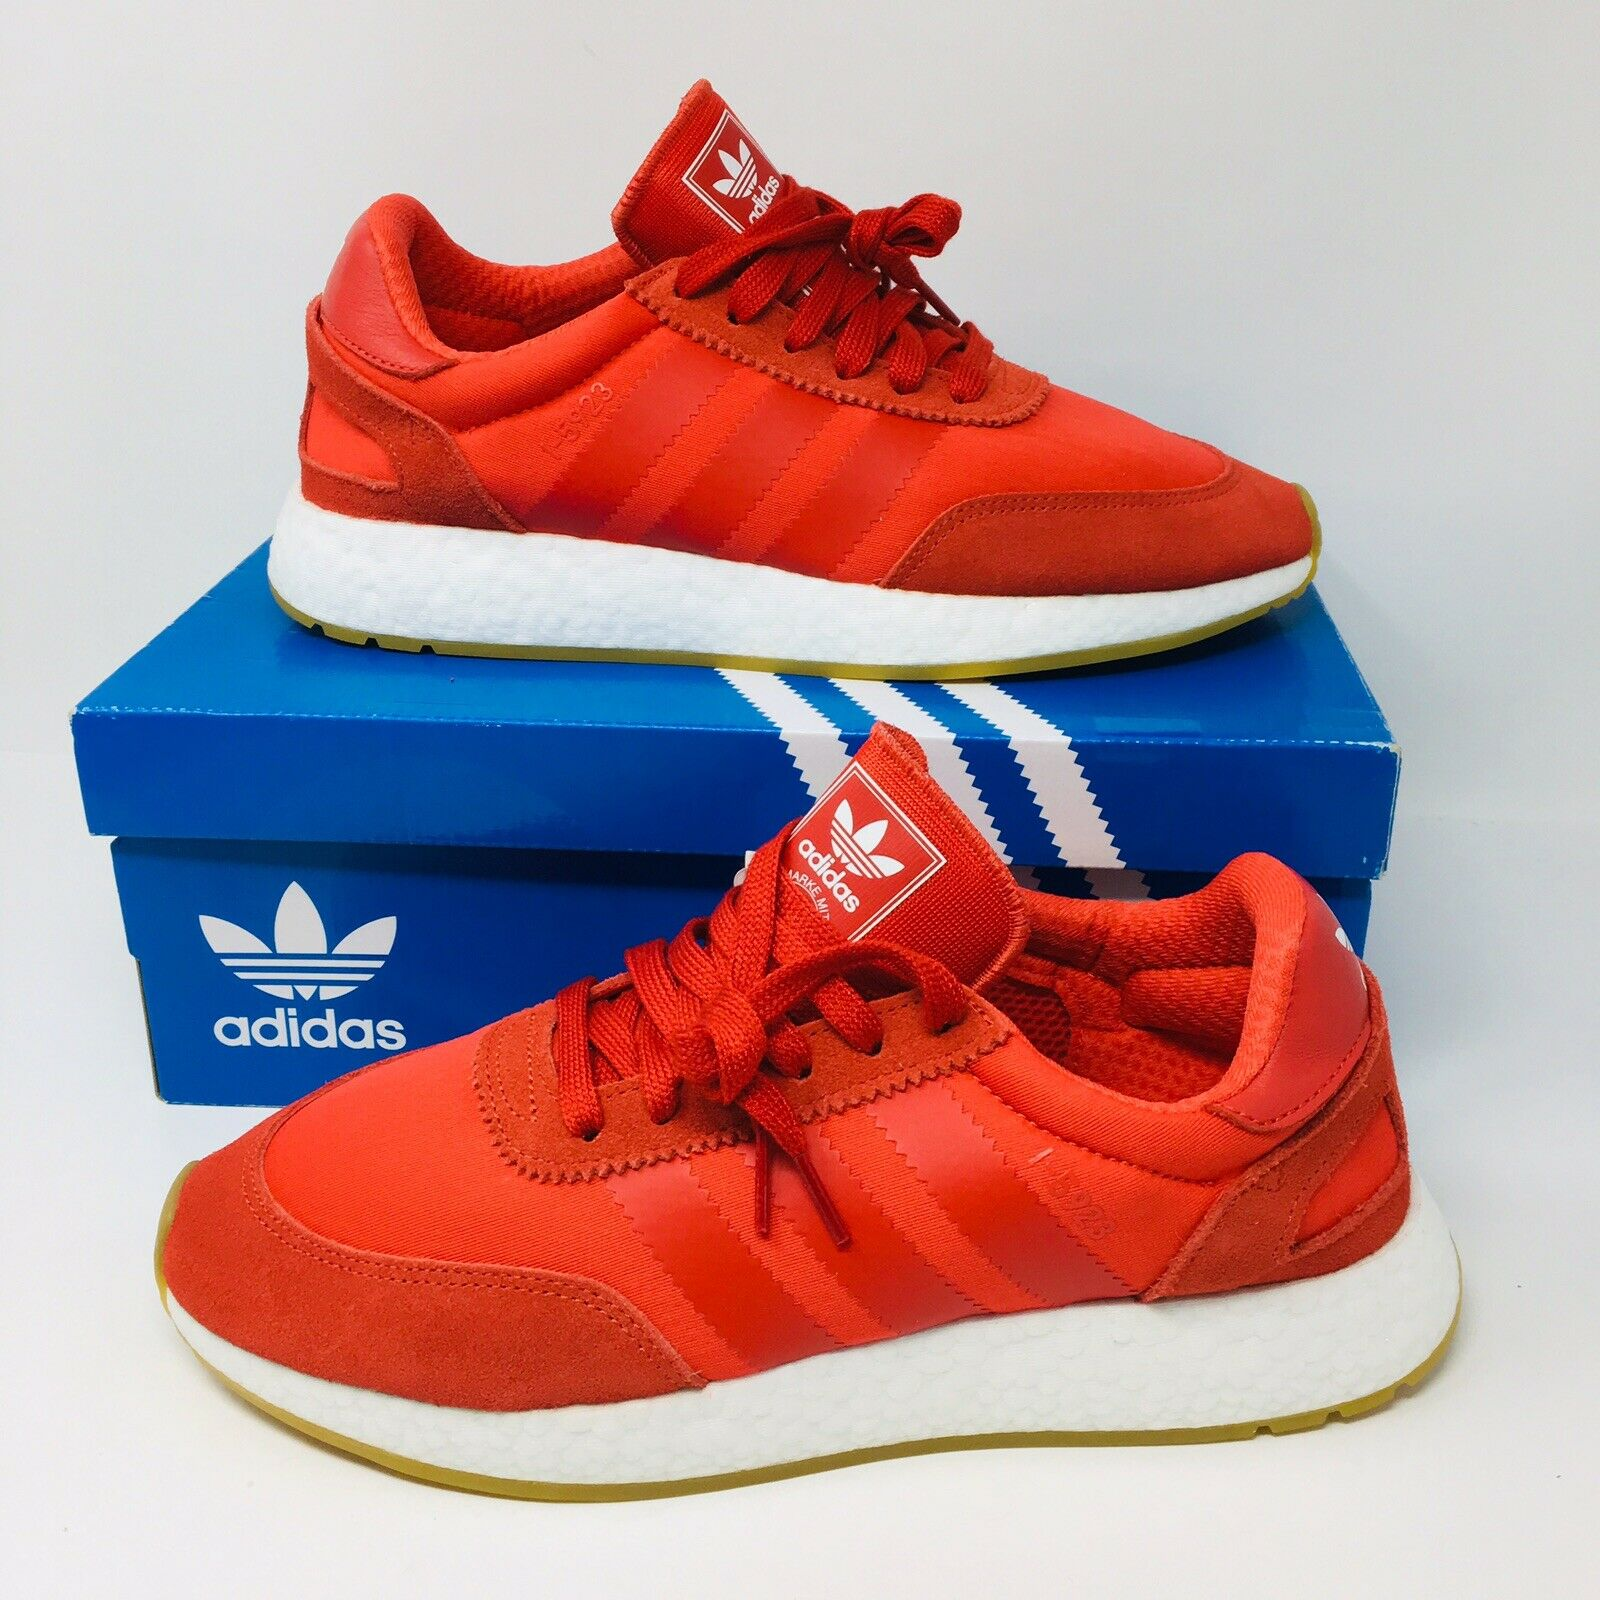 NEW Adidas Iniki 2 Boost (Men Size 9.5) Red Running shoes NMD CS1 Ultra Boost